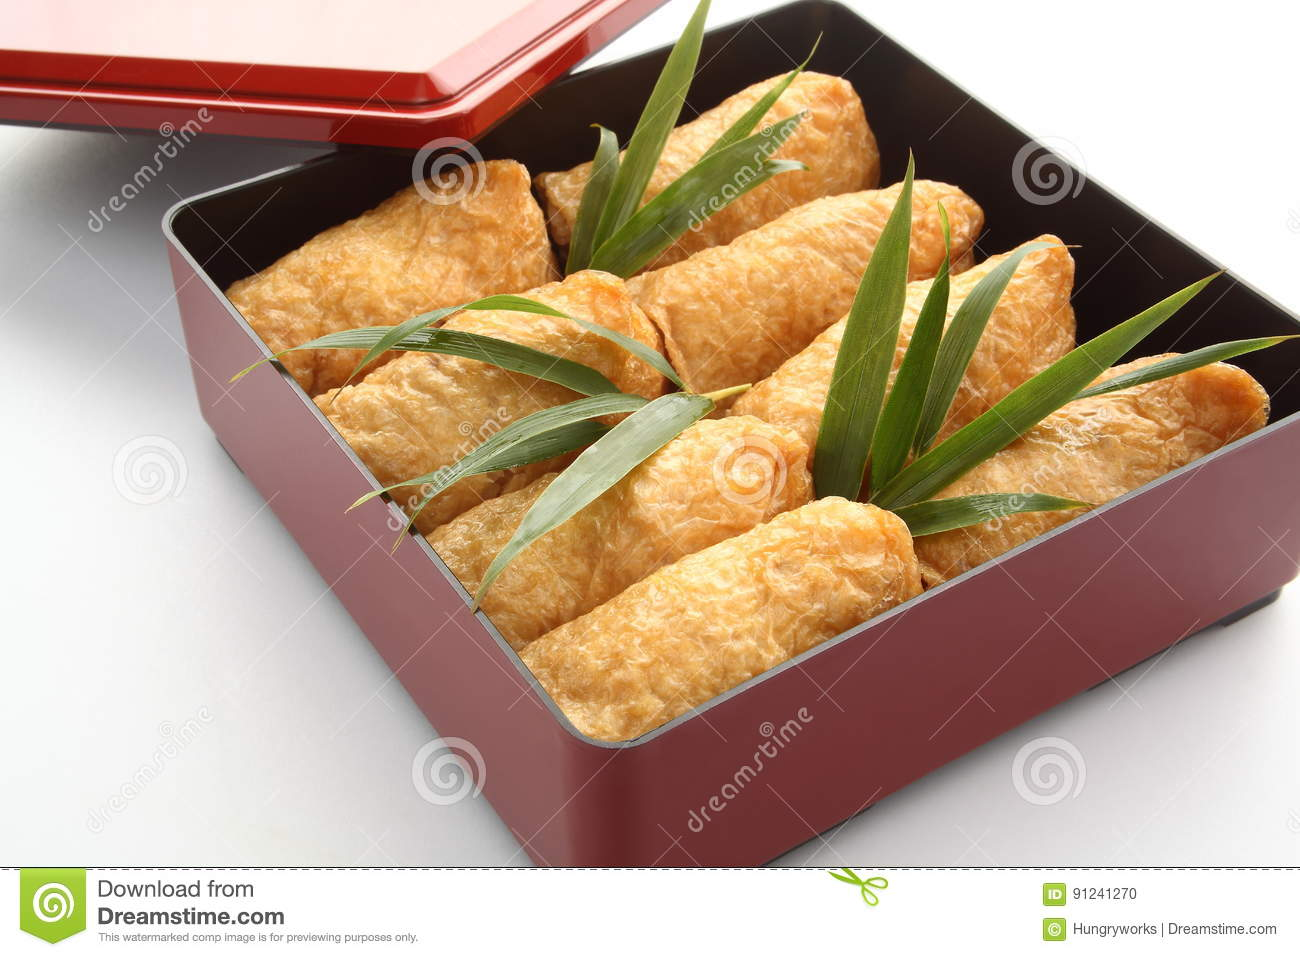 Inari Sushi Wrapped In Fried Tofu In Lunch Box Bento Japanese Food